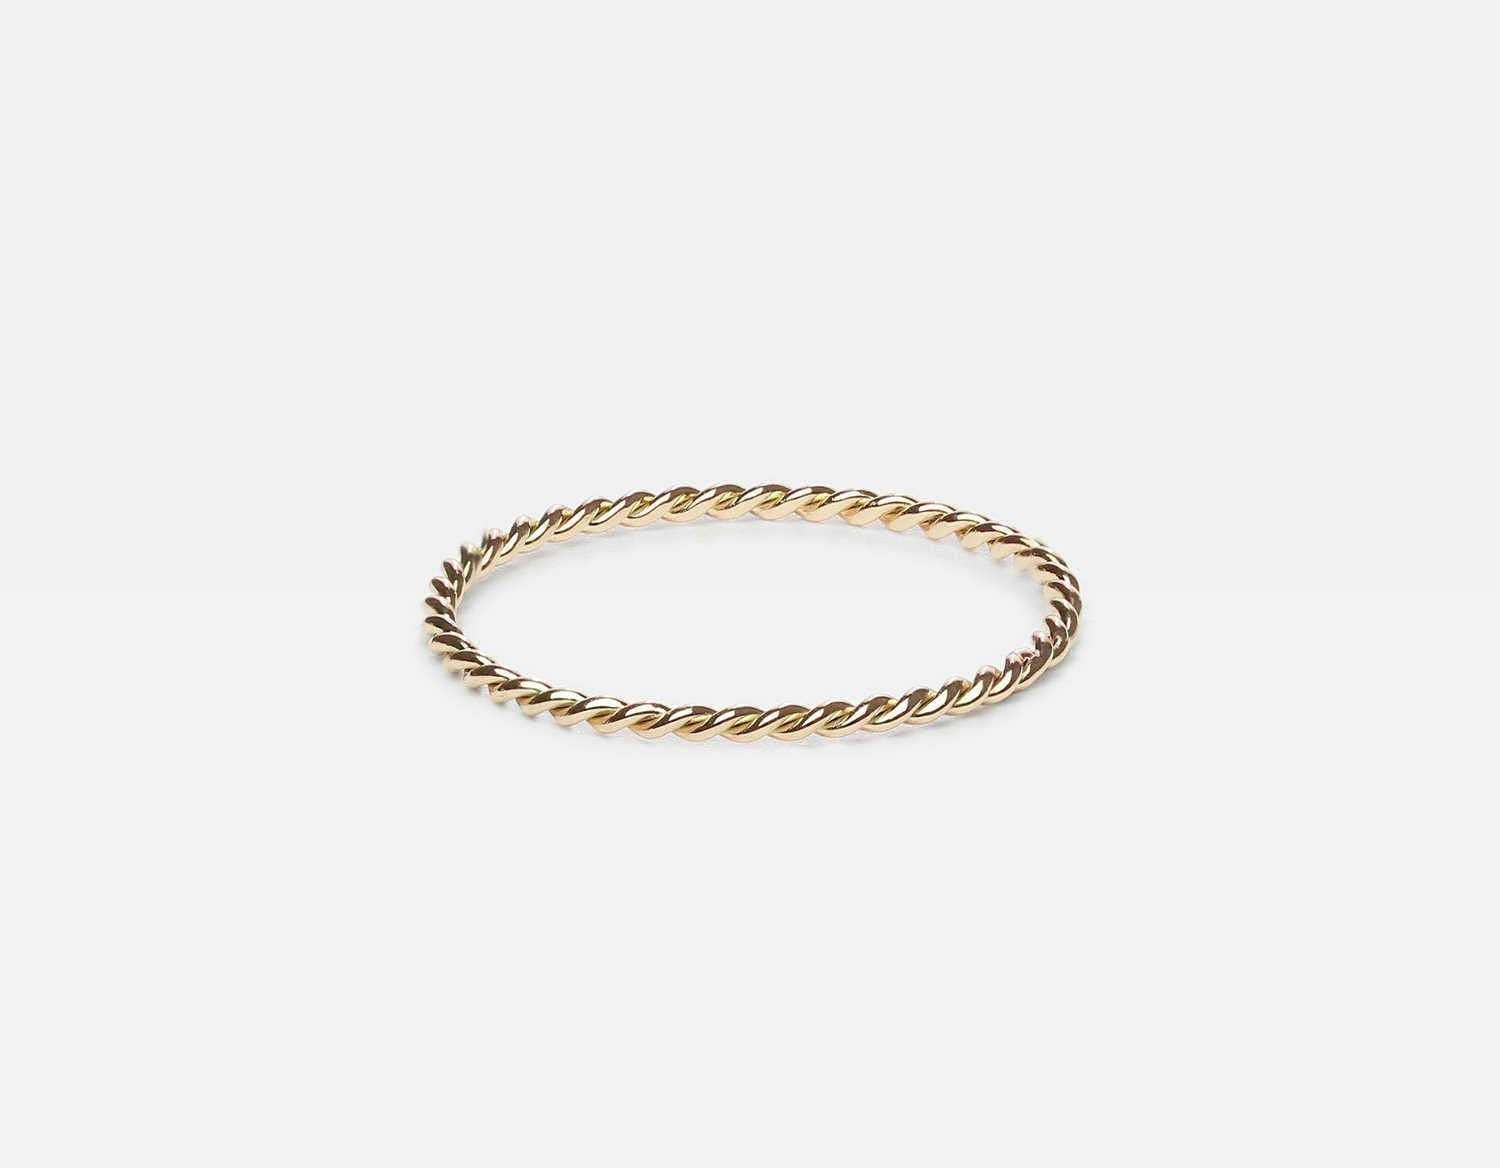 Twist Ring/ Twisted Wedding Band/ 14k Solid Gold Twist Ring/ Twisted Wedding Band/ Twist Stacking Ring/ 1.0mm Wedding Ring